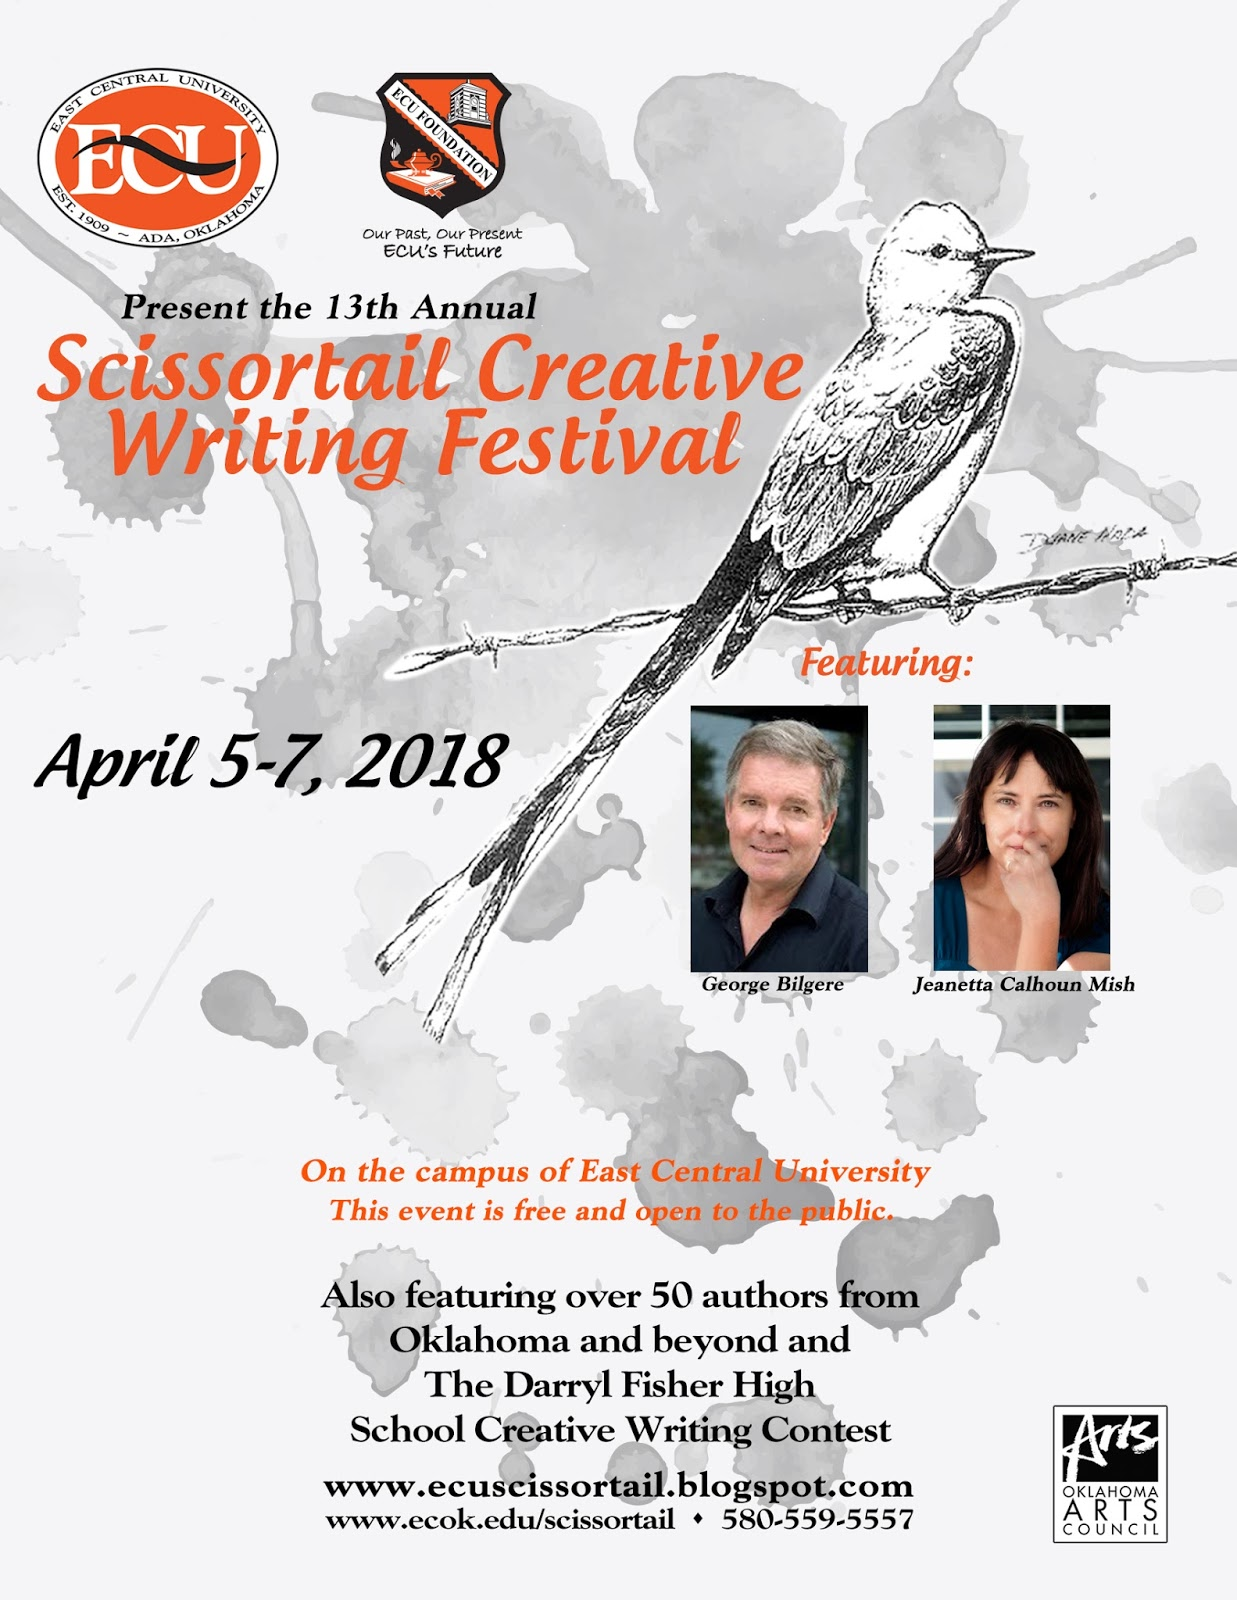 montreat college creative writing festival